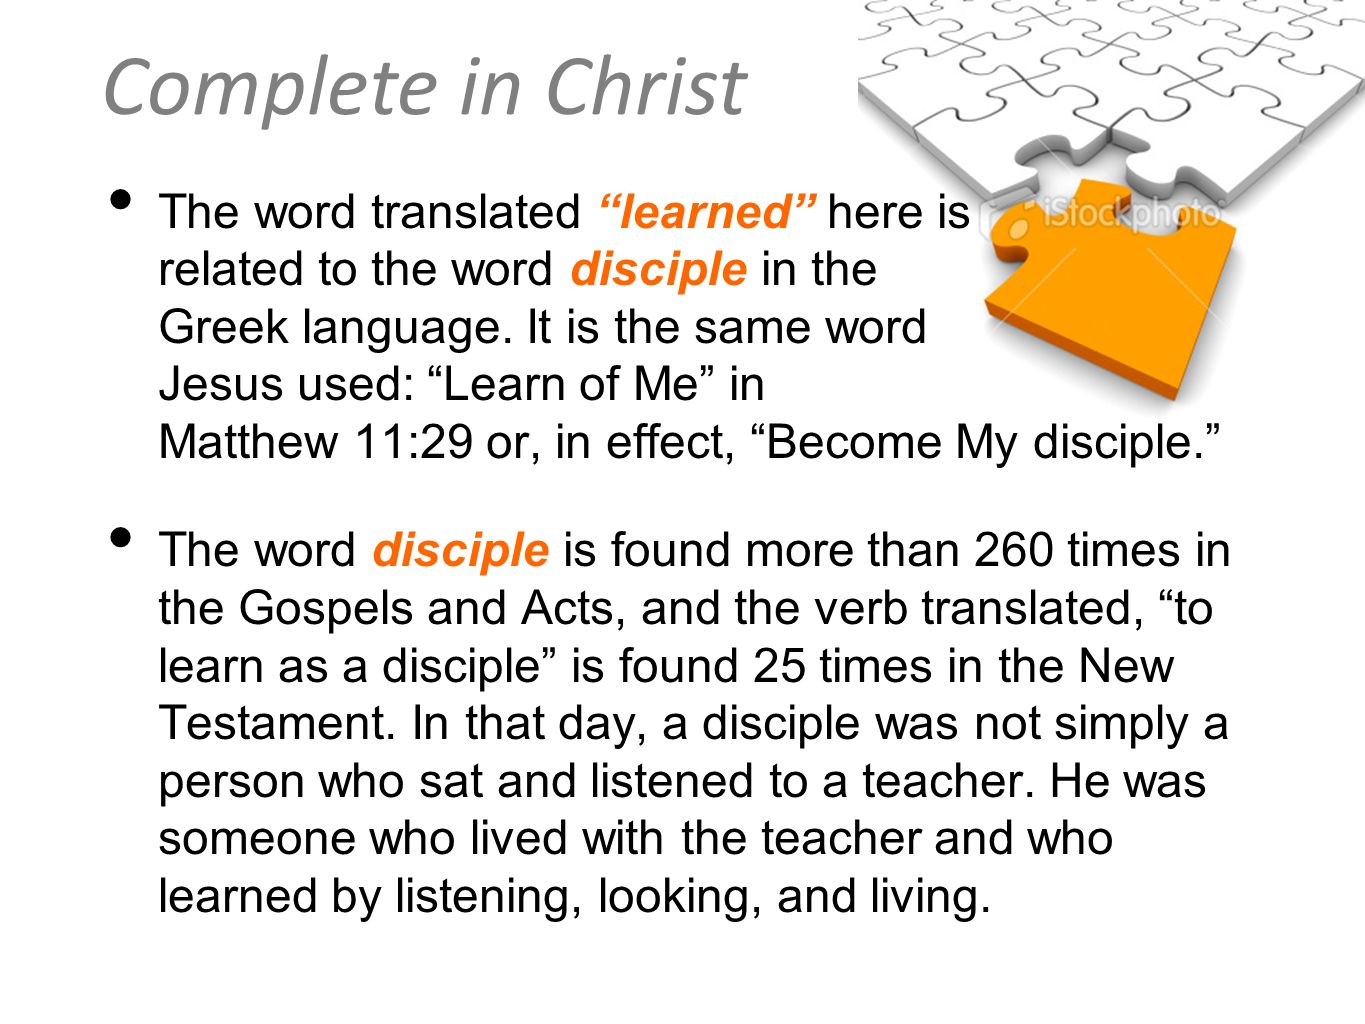 The word translated learned here is related to the word disciple in the Greek language. It is the same word Jesus used: Learn of Me in Matthew 11:29 or, in effect, Become My disciple.